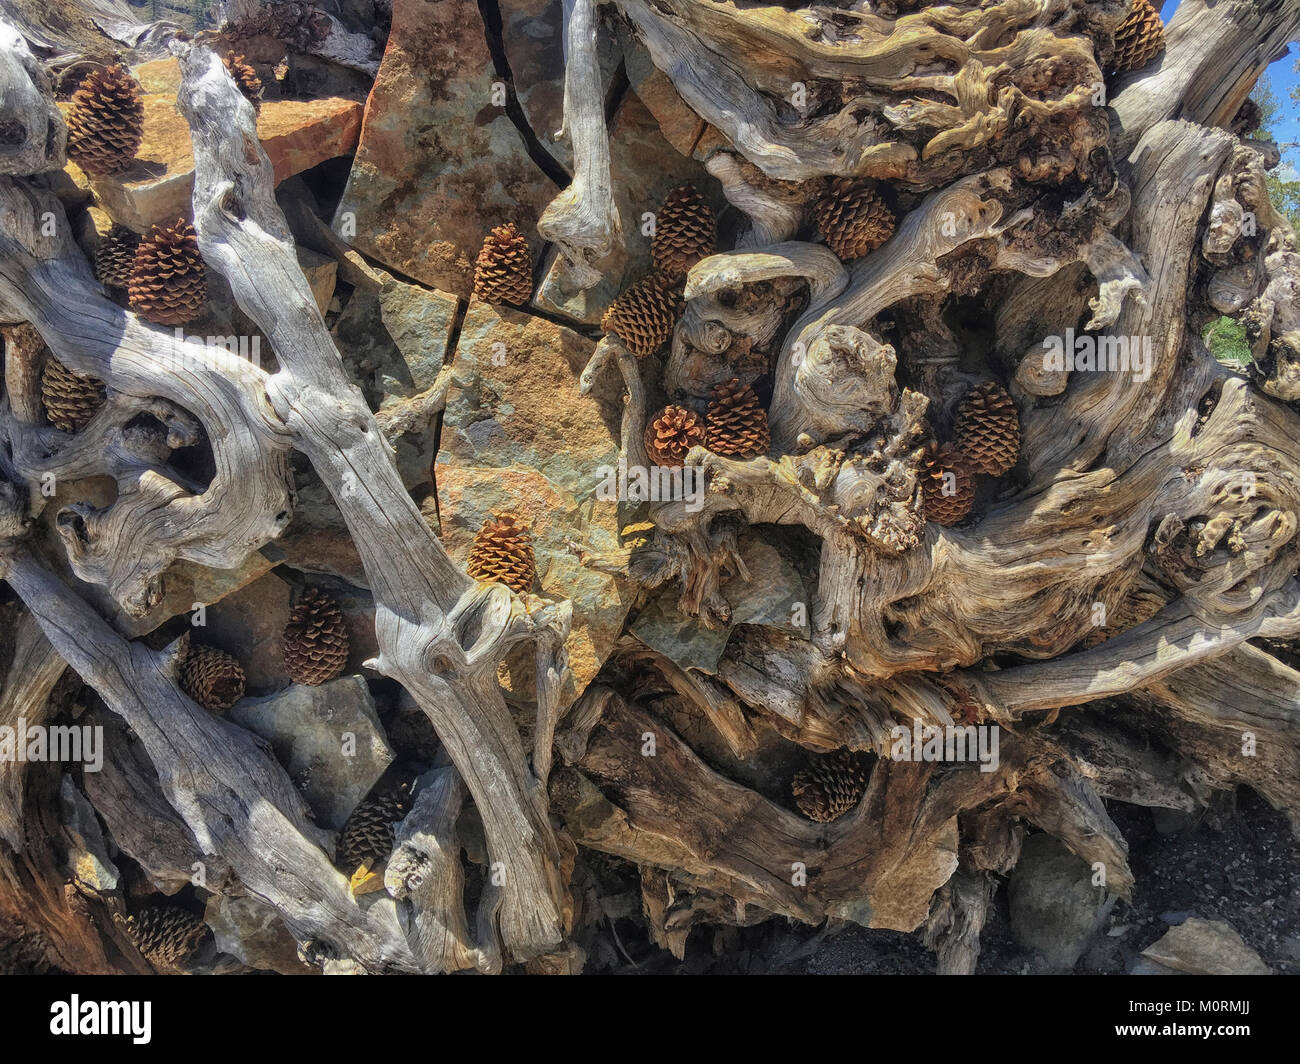 Dead Trees from Rainbow Fire near Rainbow Falls, Devils Postpile National Monument, Inyo National Forest, California, - Stock Image